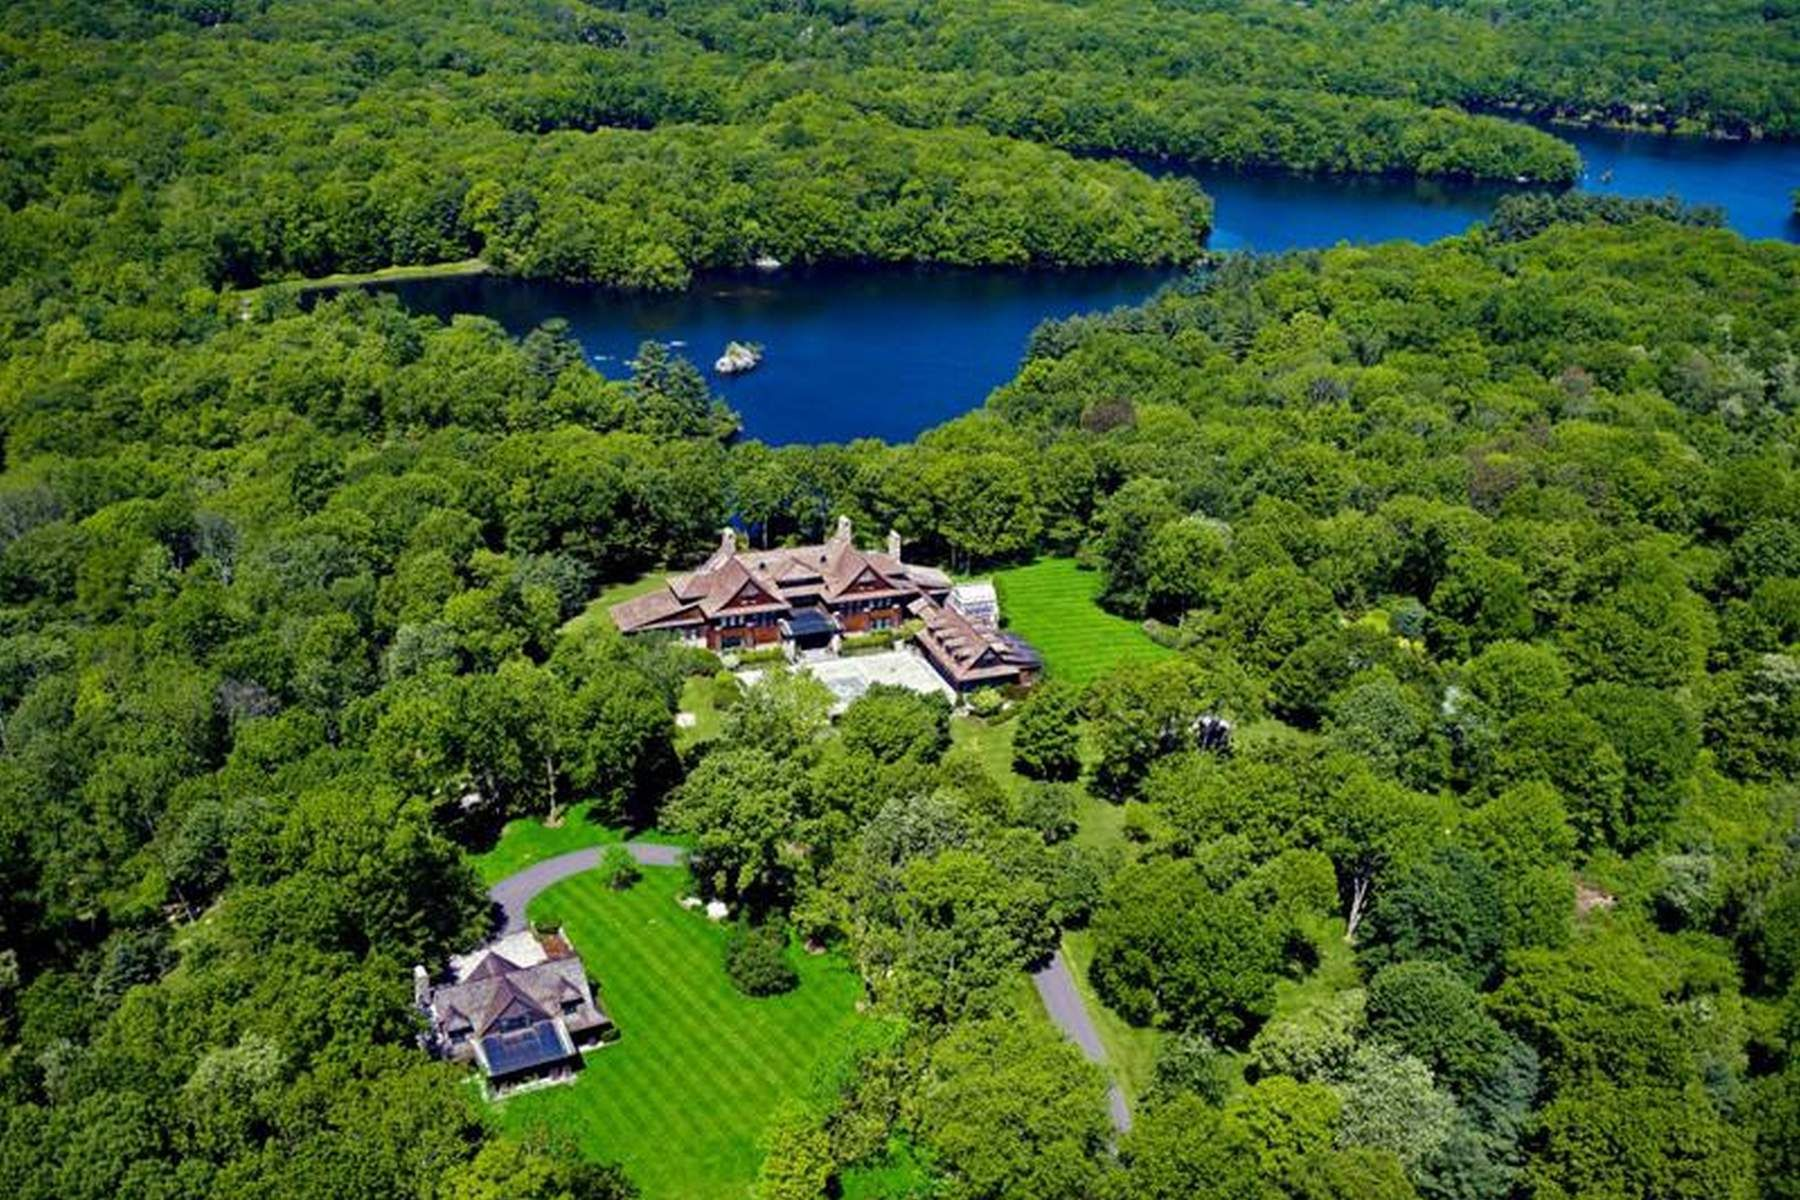 Single Family Home for Sale at Conyers Farm Lakefront Estate 65 Upper Cross Road Greenwich, Connecticut 06831 United States